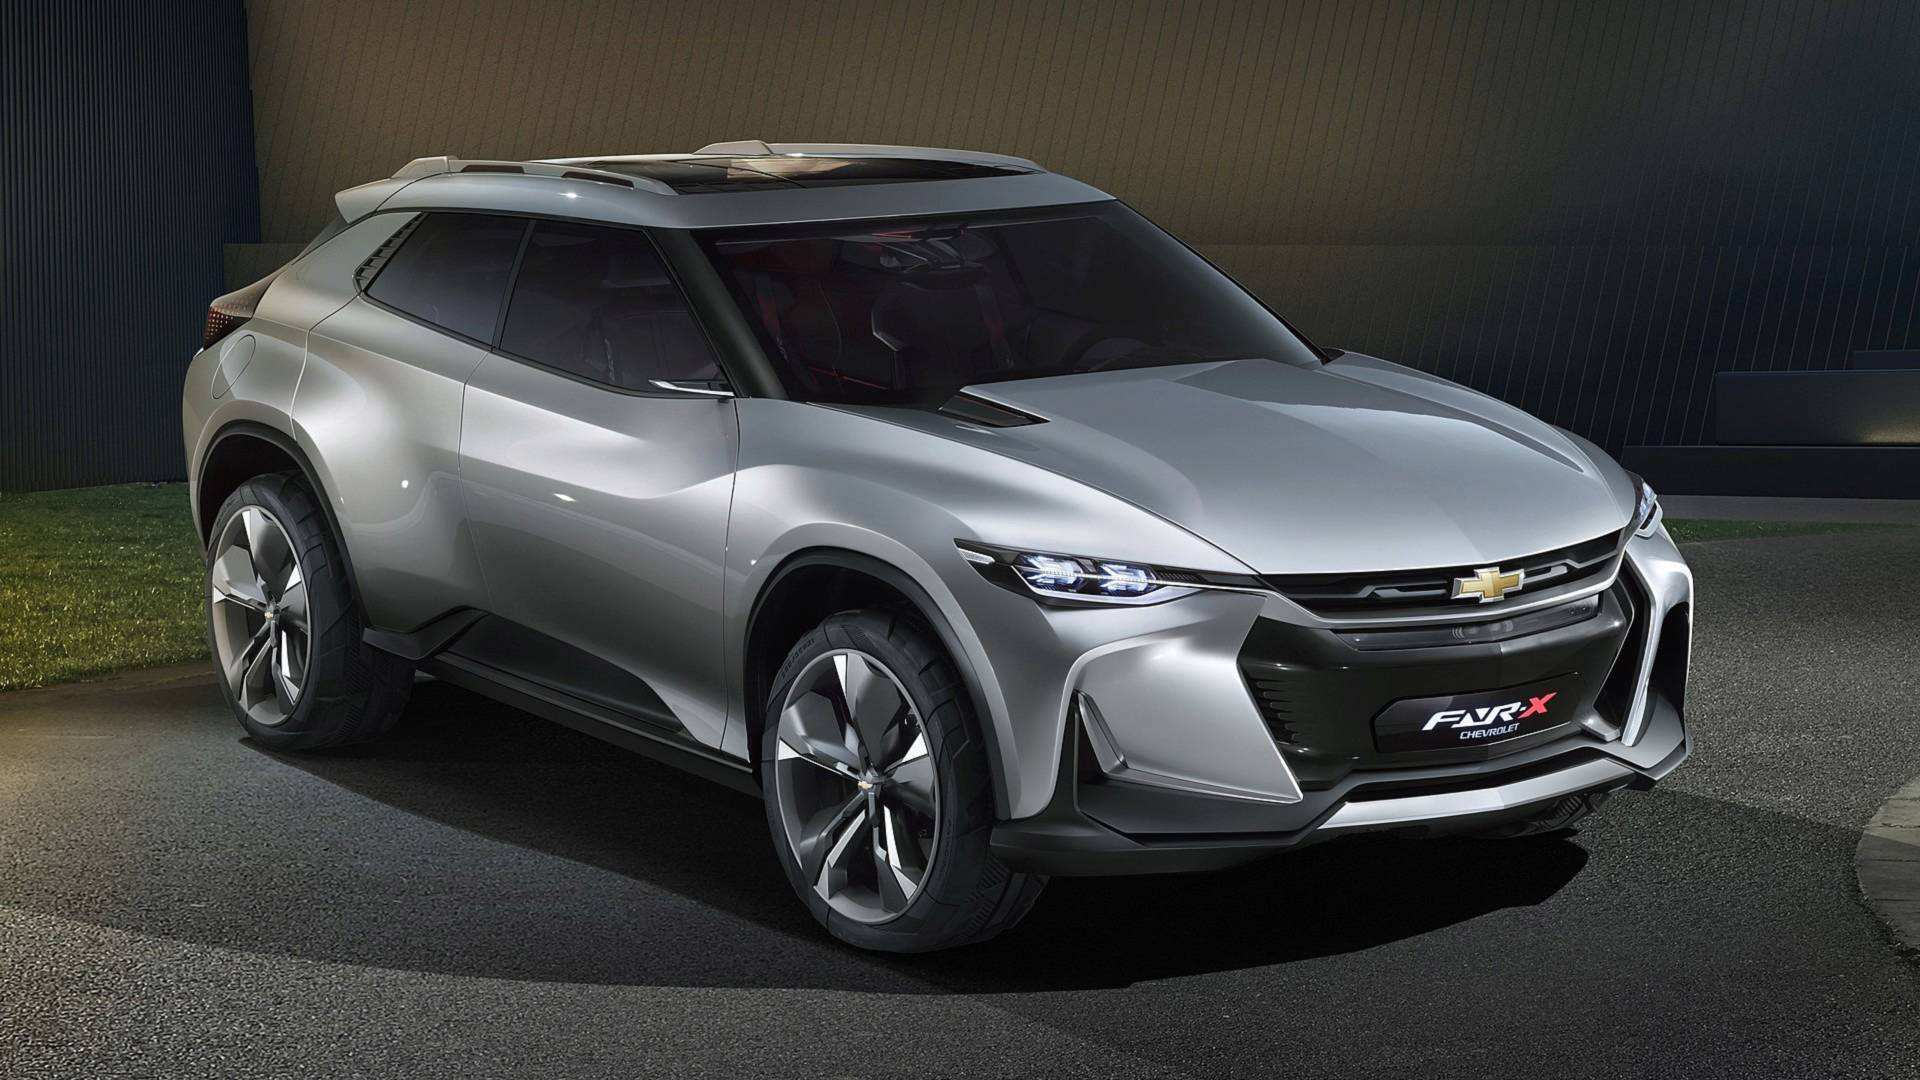 12 Concept of Chevrolet Lineup 2020 Engine with Chevrolet Lineup 2020